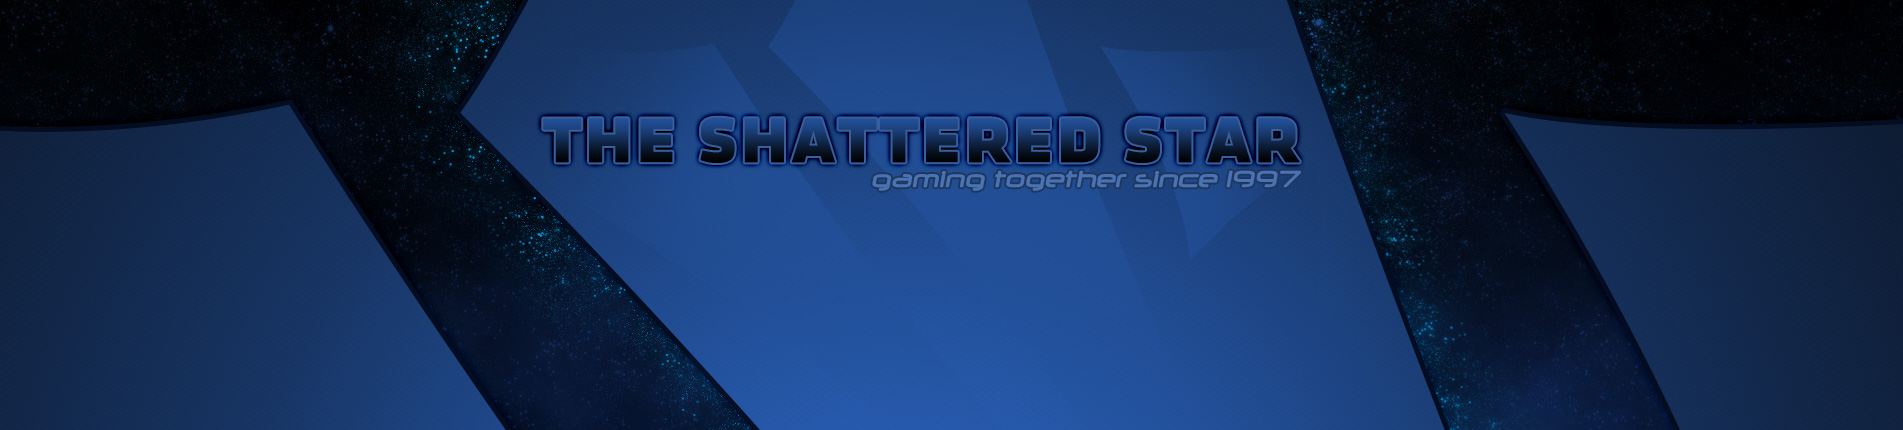 The Shattered Star - Gaming Together Since 1997